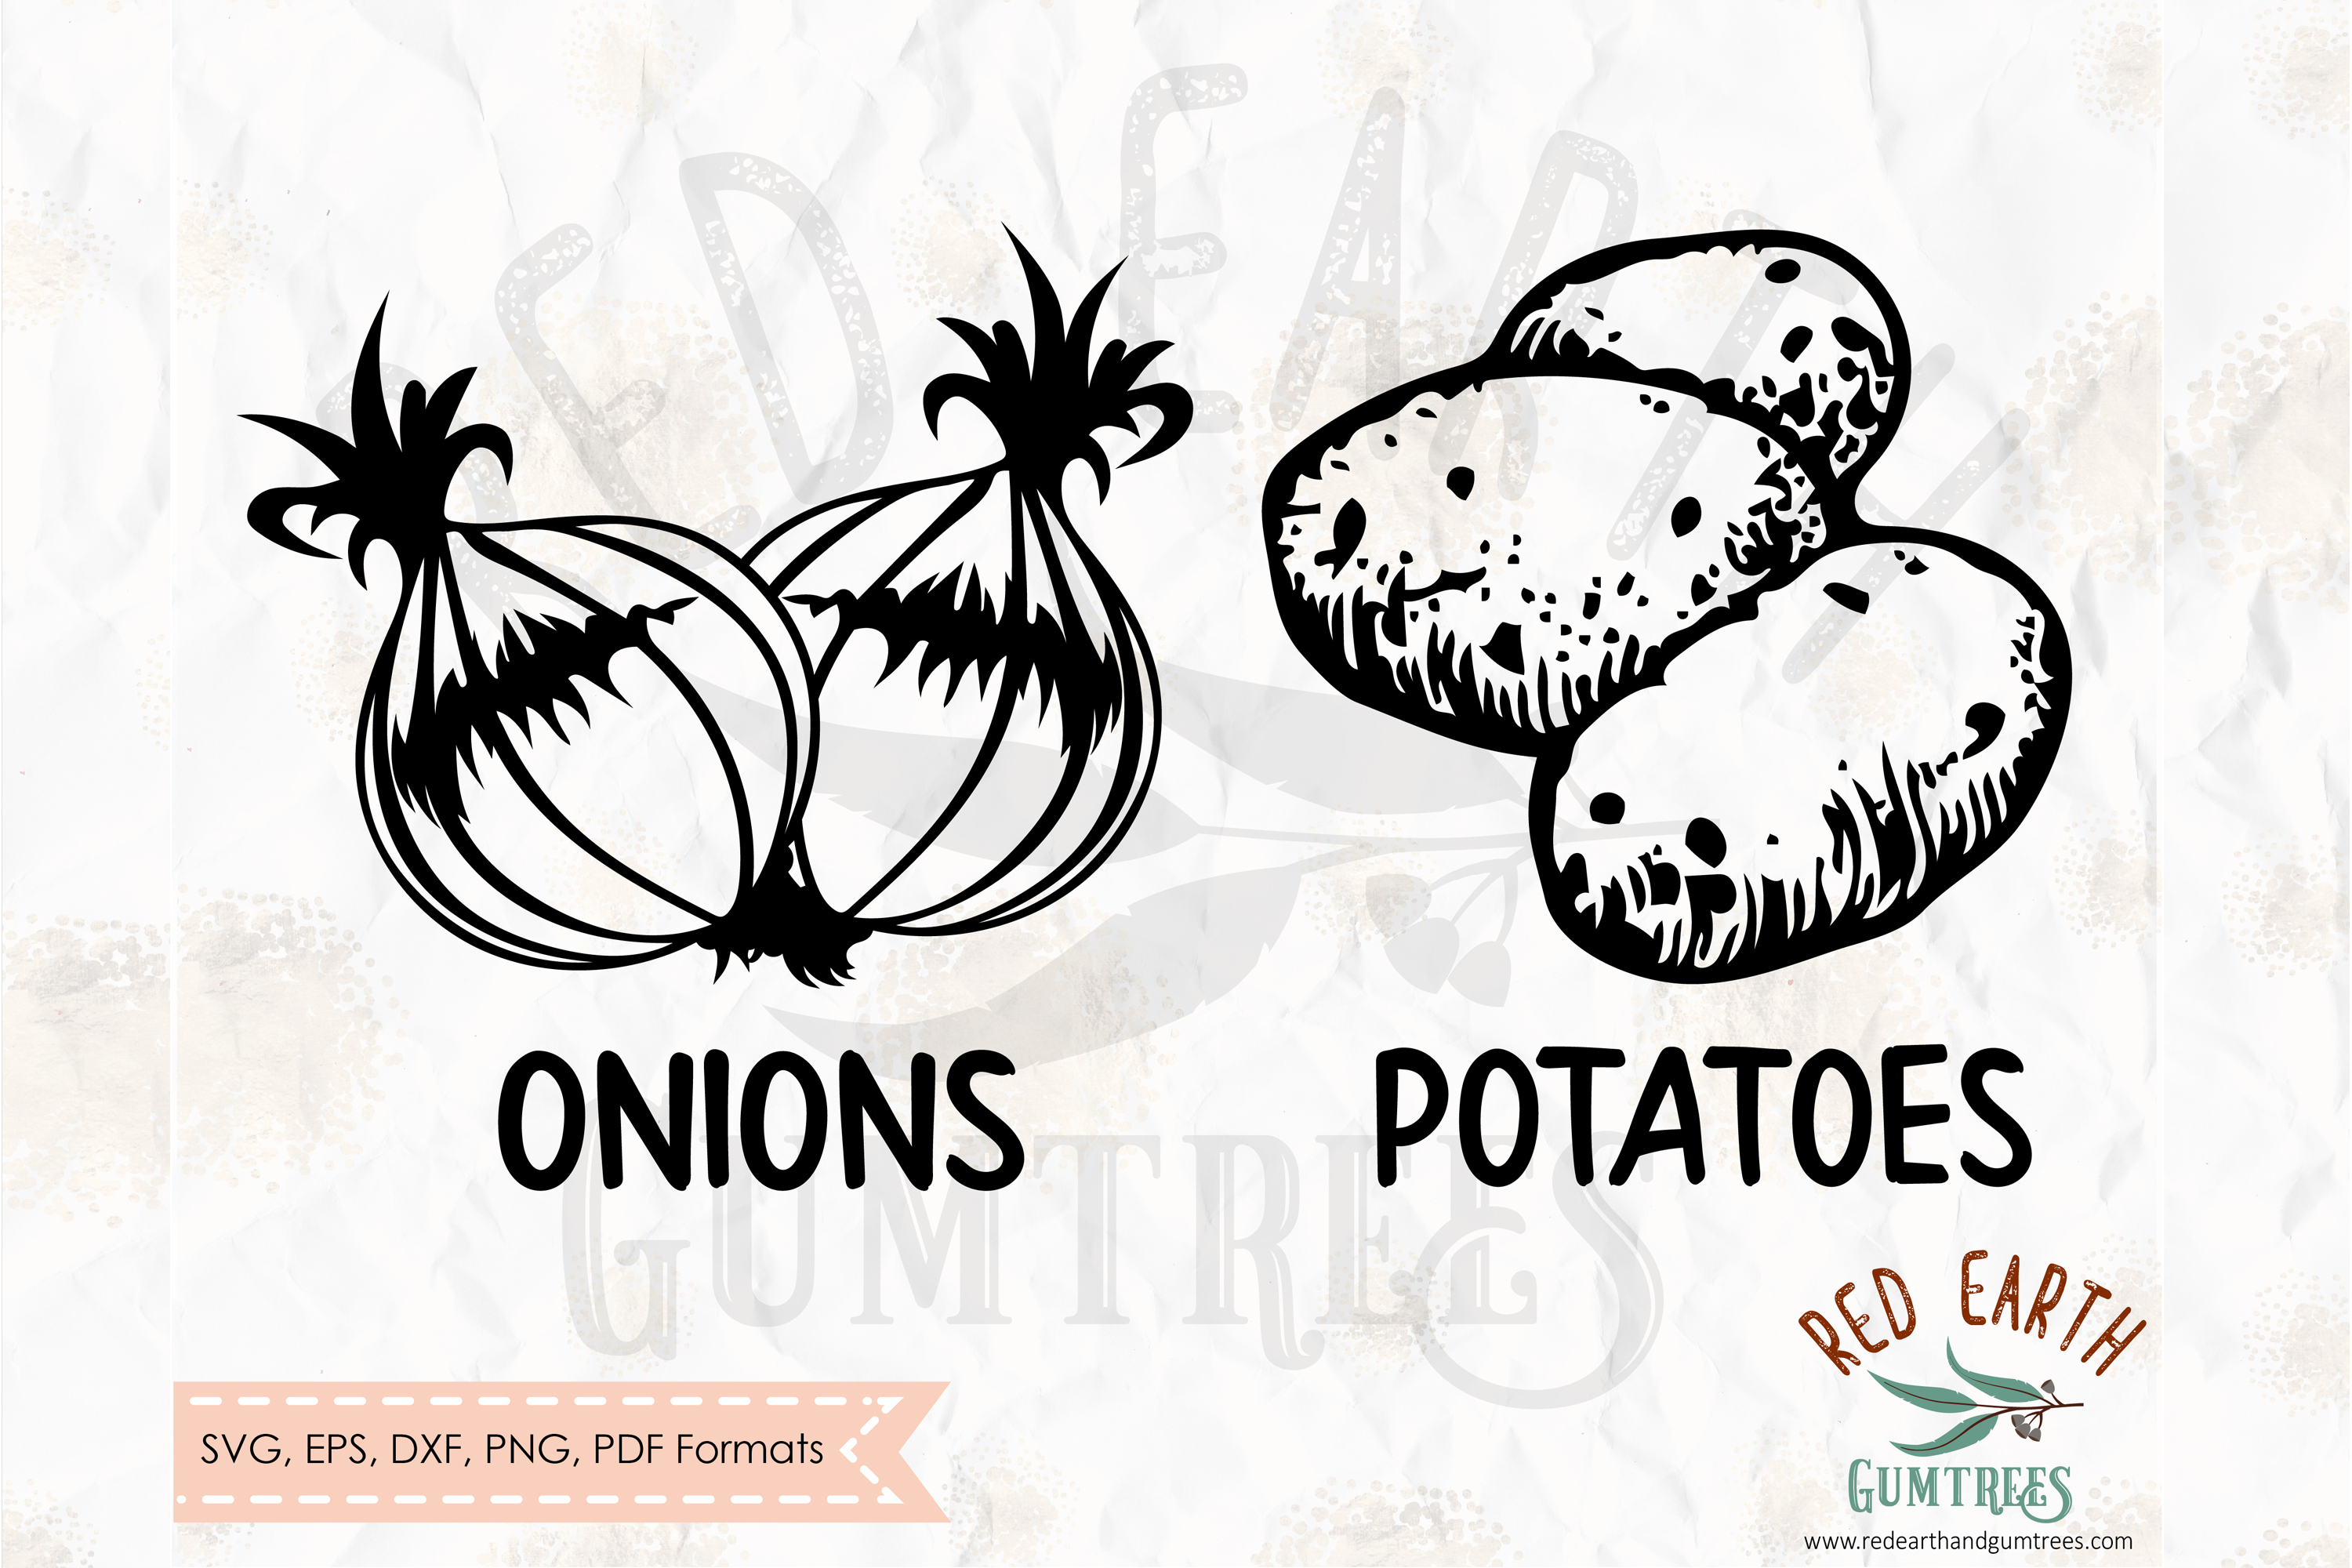 Rustic kitchen potato and onions sack decals SVG,DXF,PNG,EPS example image 1